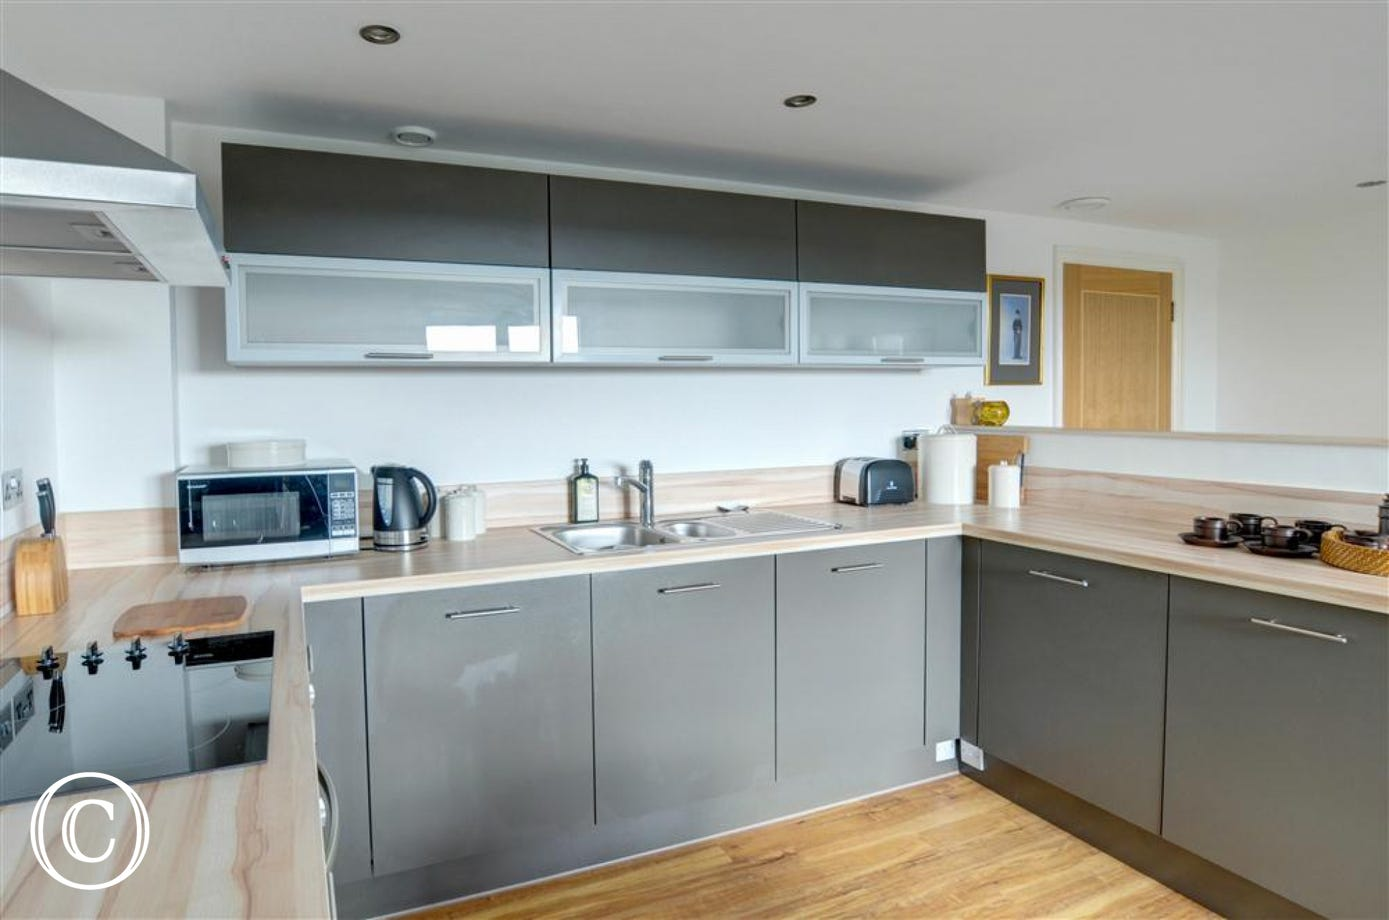 A different view over the modern and well equipped kitchen area